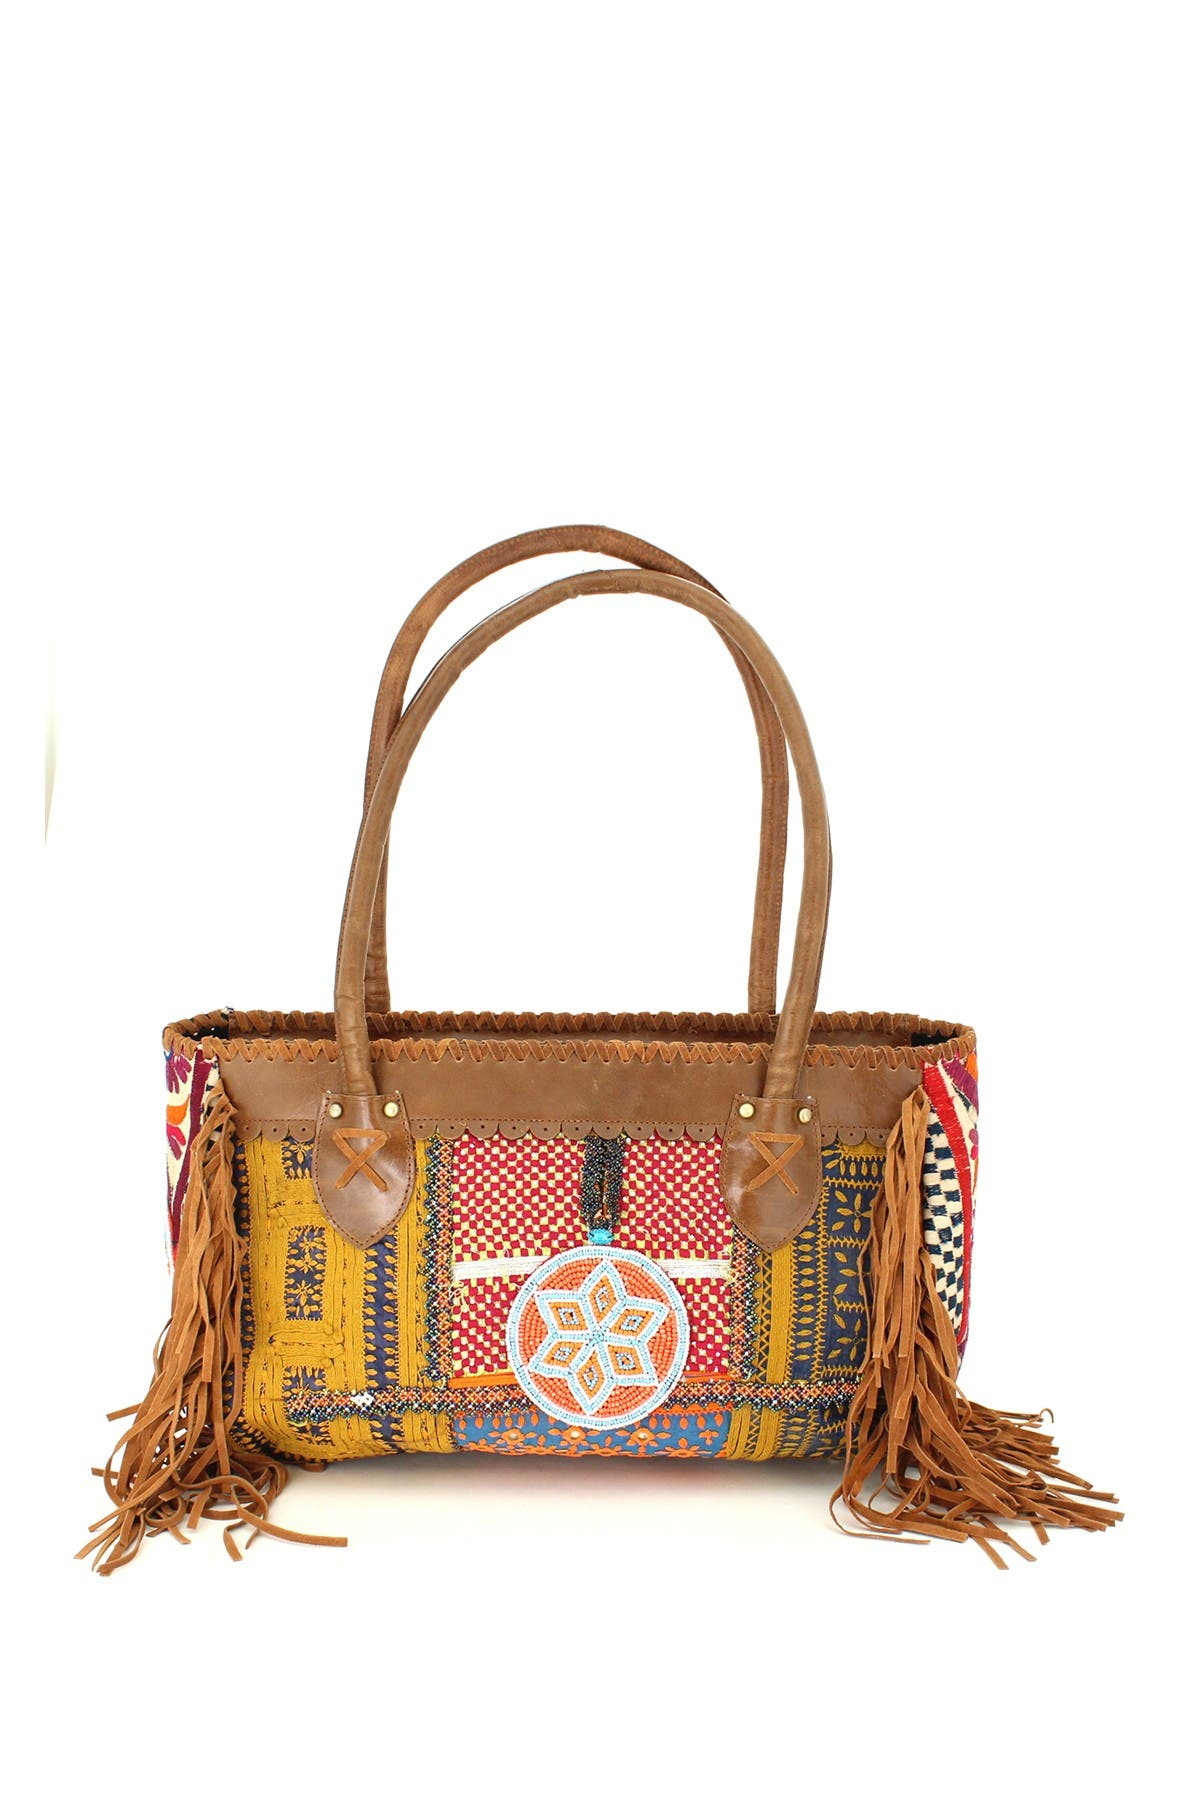 Image of Vintage Addiction Leather & Vintage Fabric Baguette Shoulder Bag